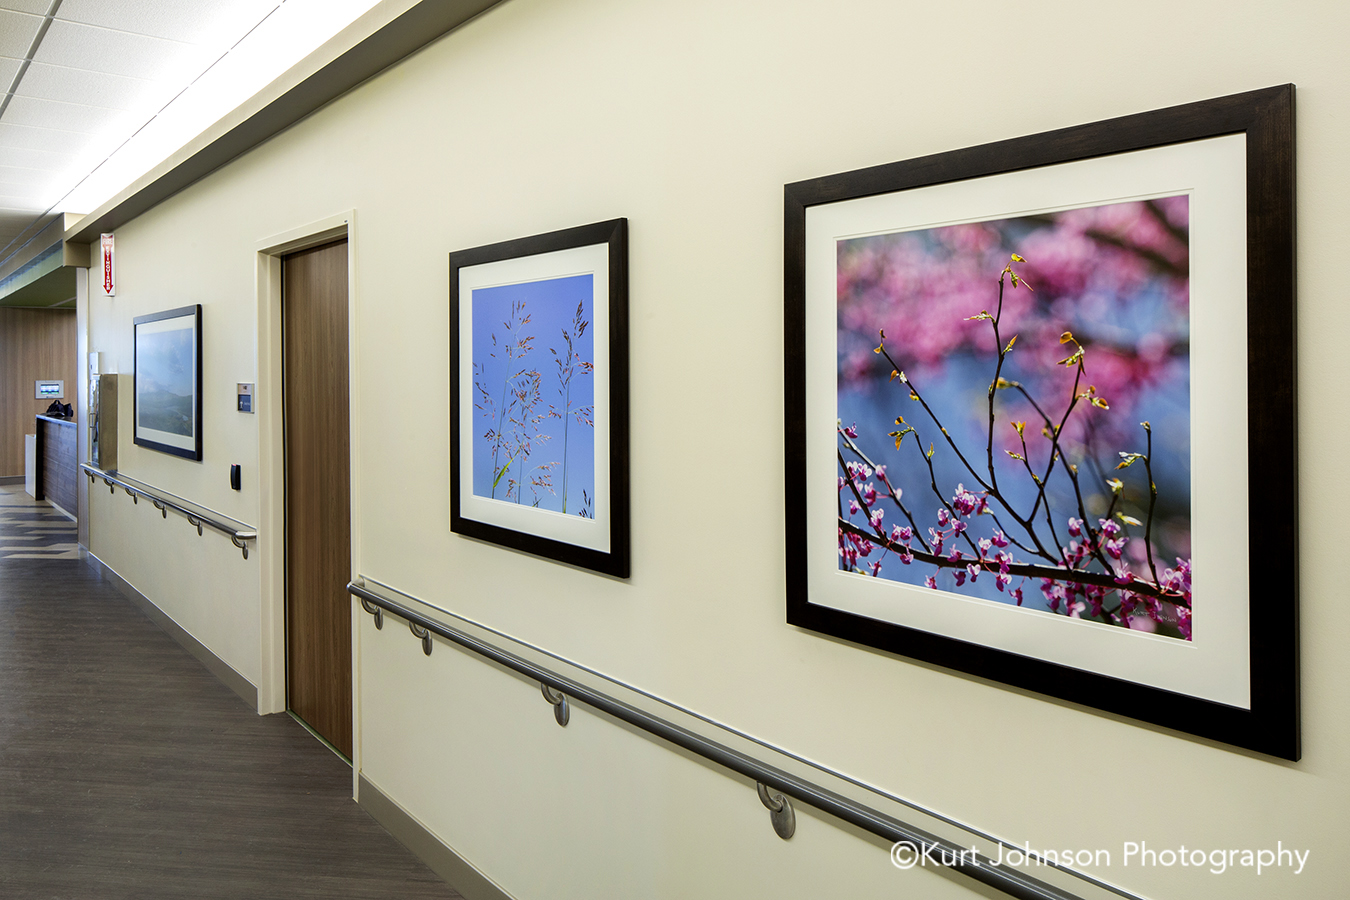 Regional Health Medical Center Advanced Orthopedic and Sports Medicine Institute Rapid City South Dakota framed healthcare art blue sky pink flowering tree install installation hallway corridor